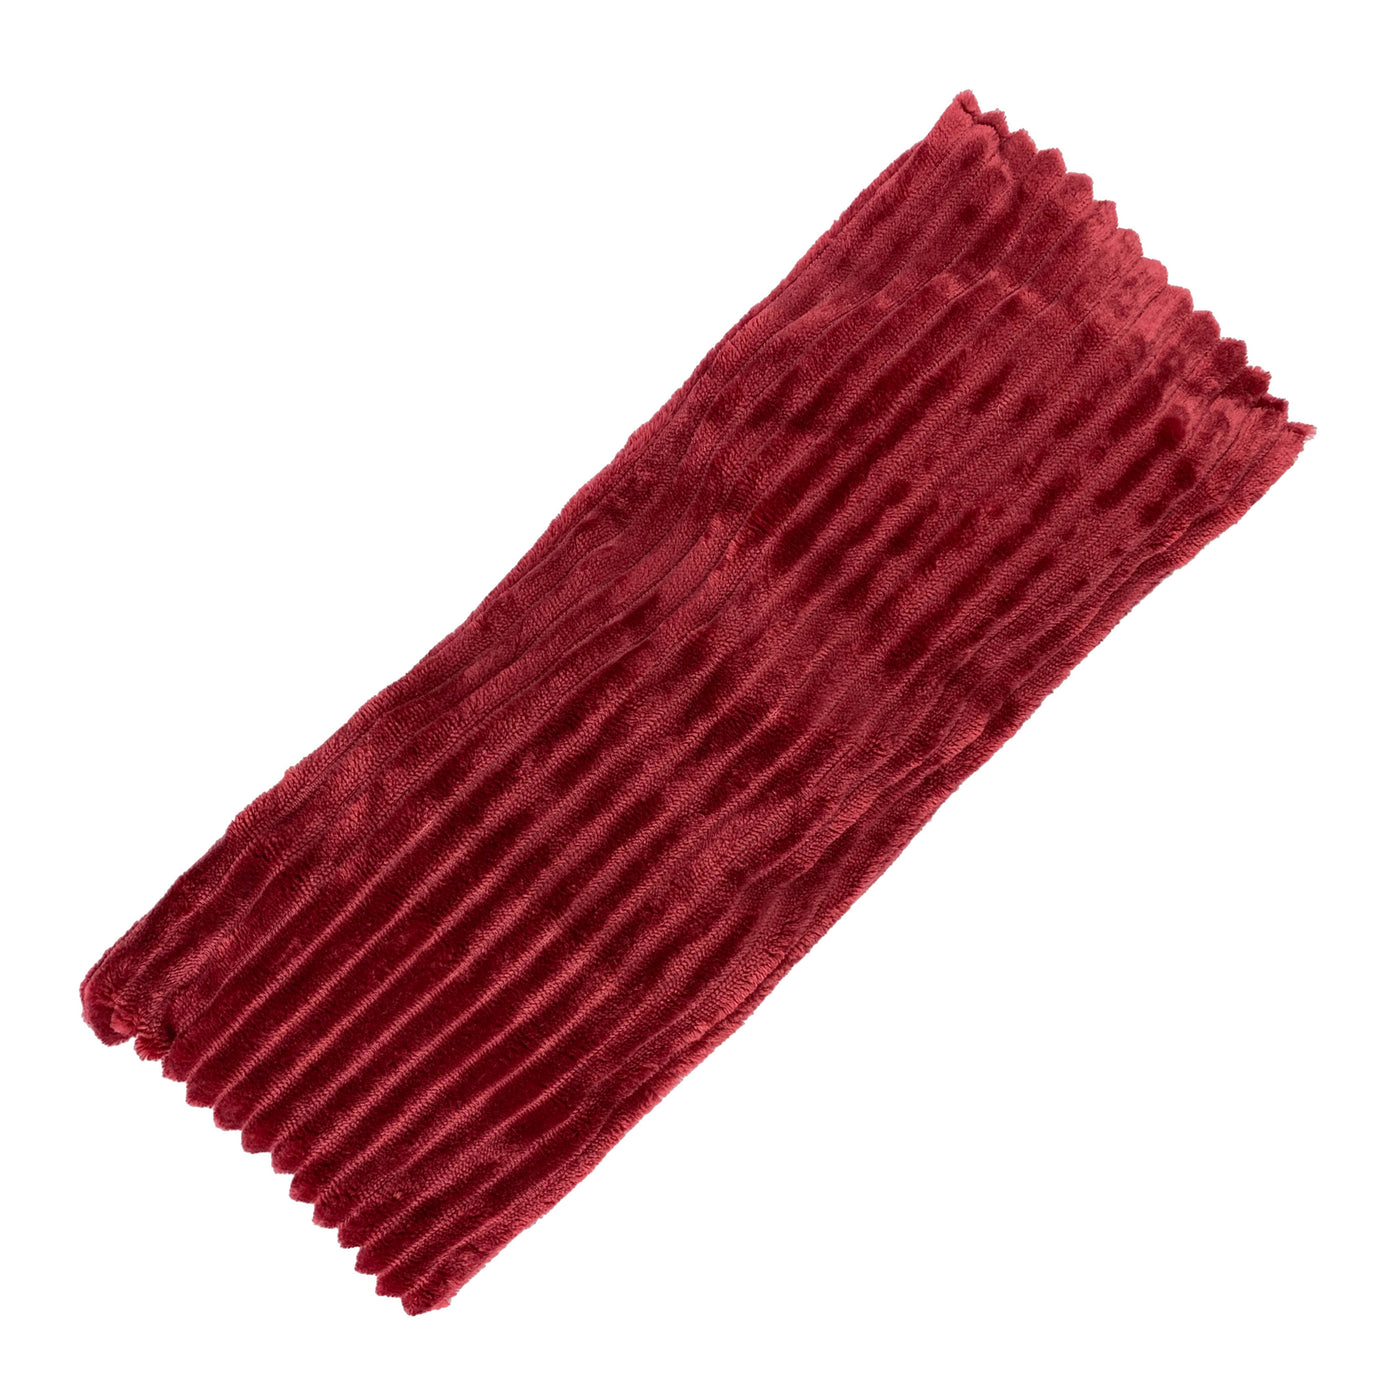 Wheat Heat Bag - Red Thick Cord